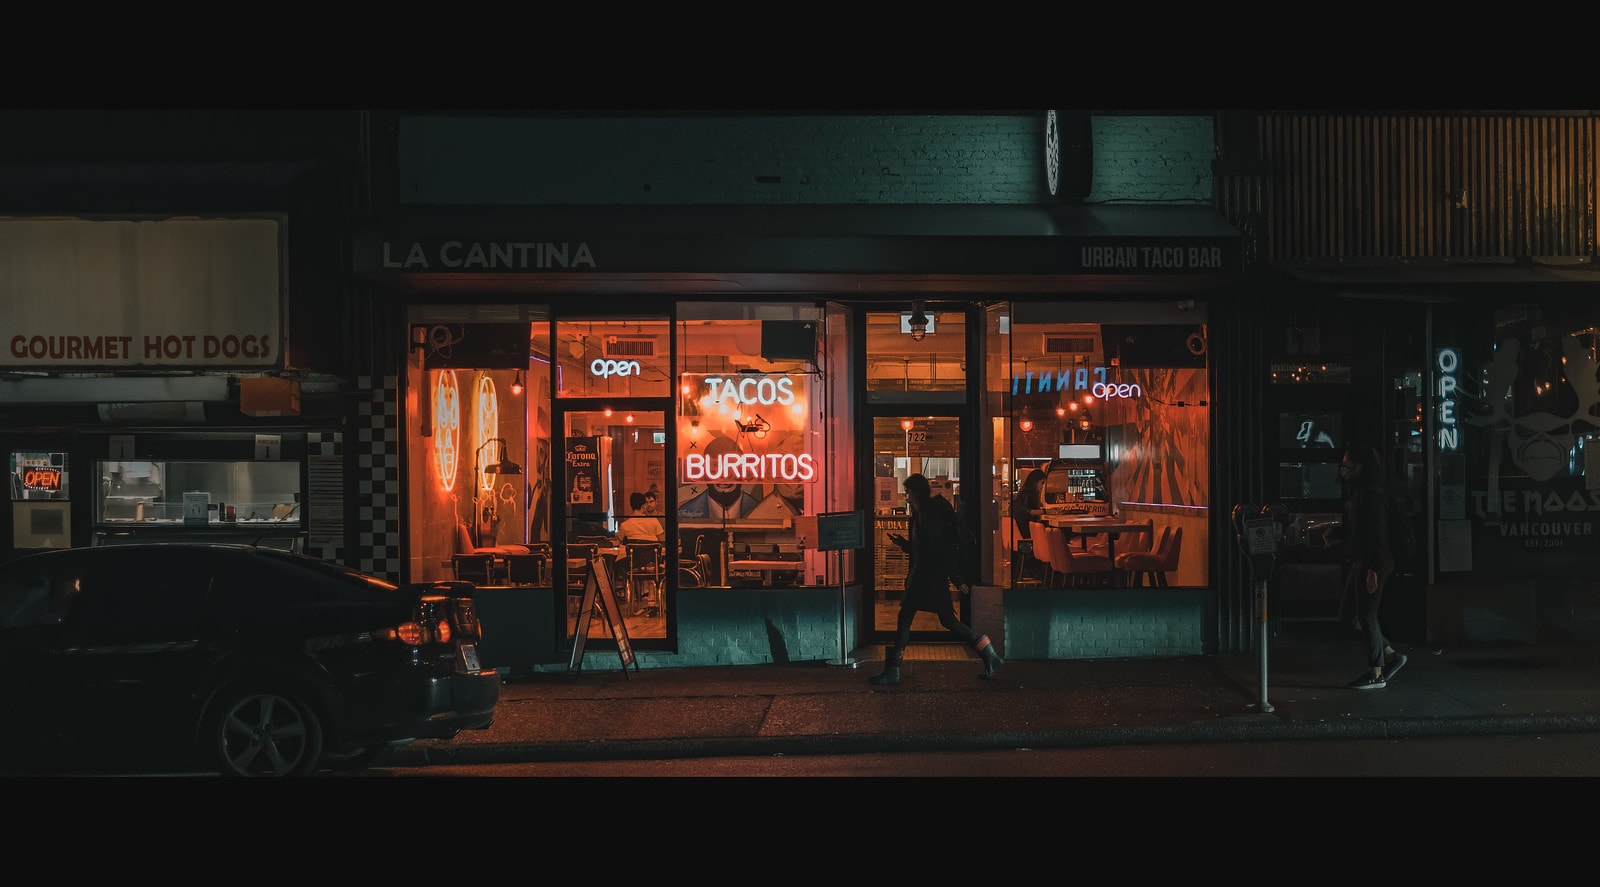 Exterior shot of Mexican restaurant at night